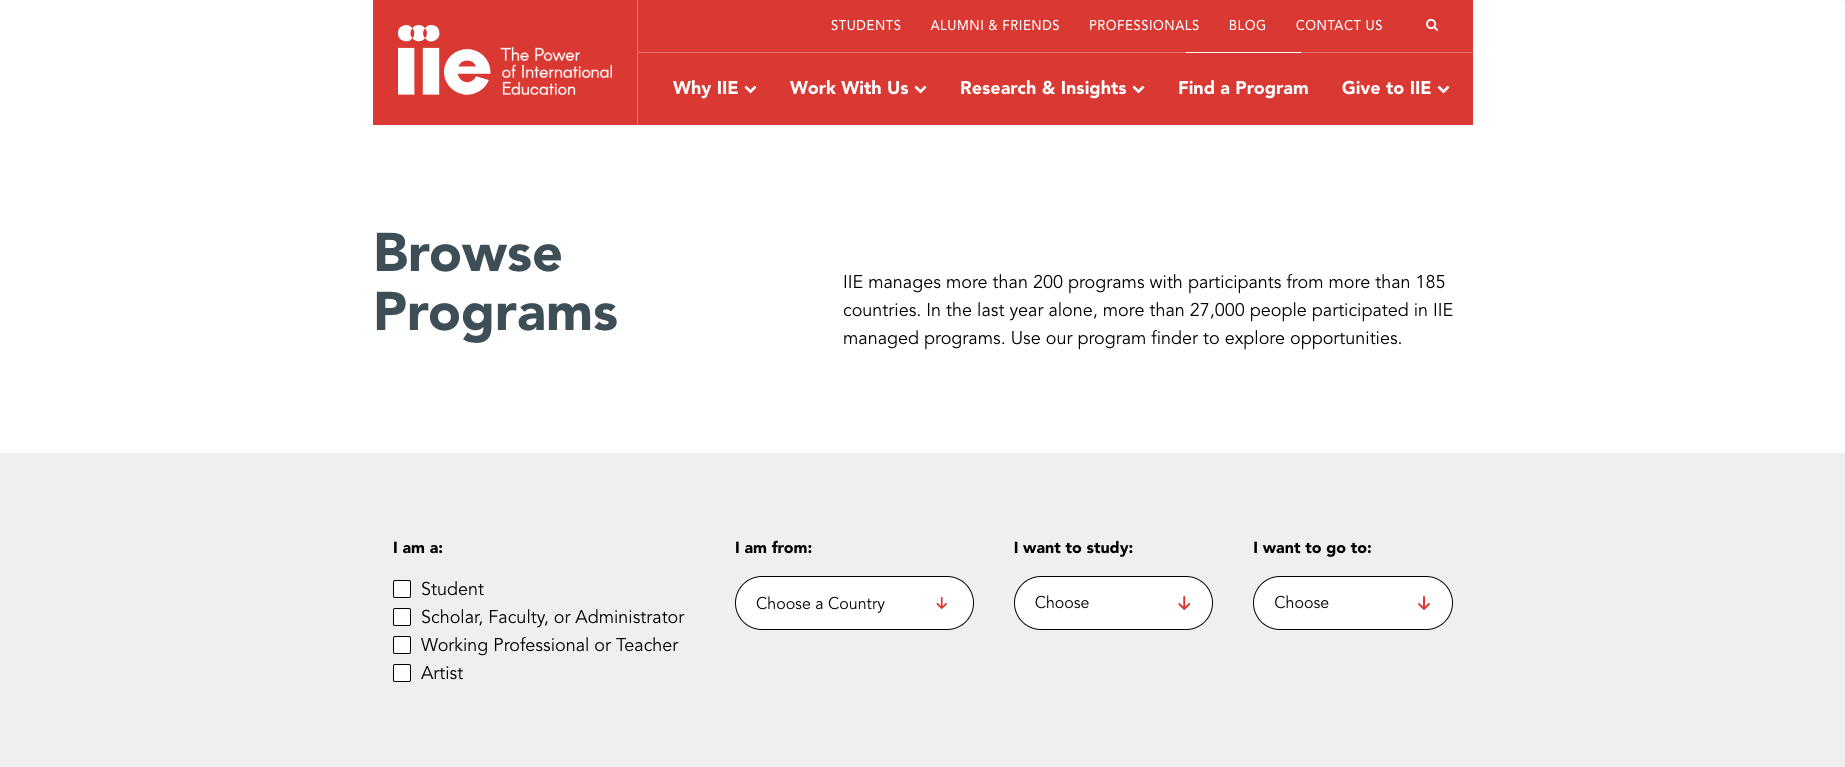 IIE Browse Programs page